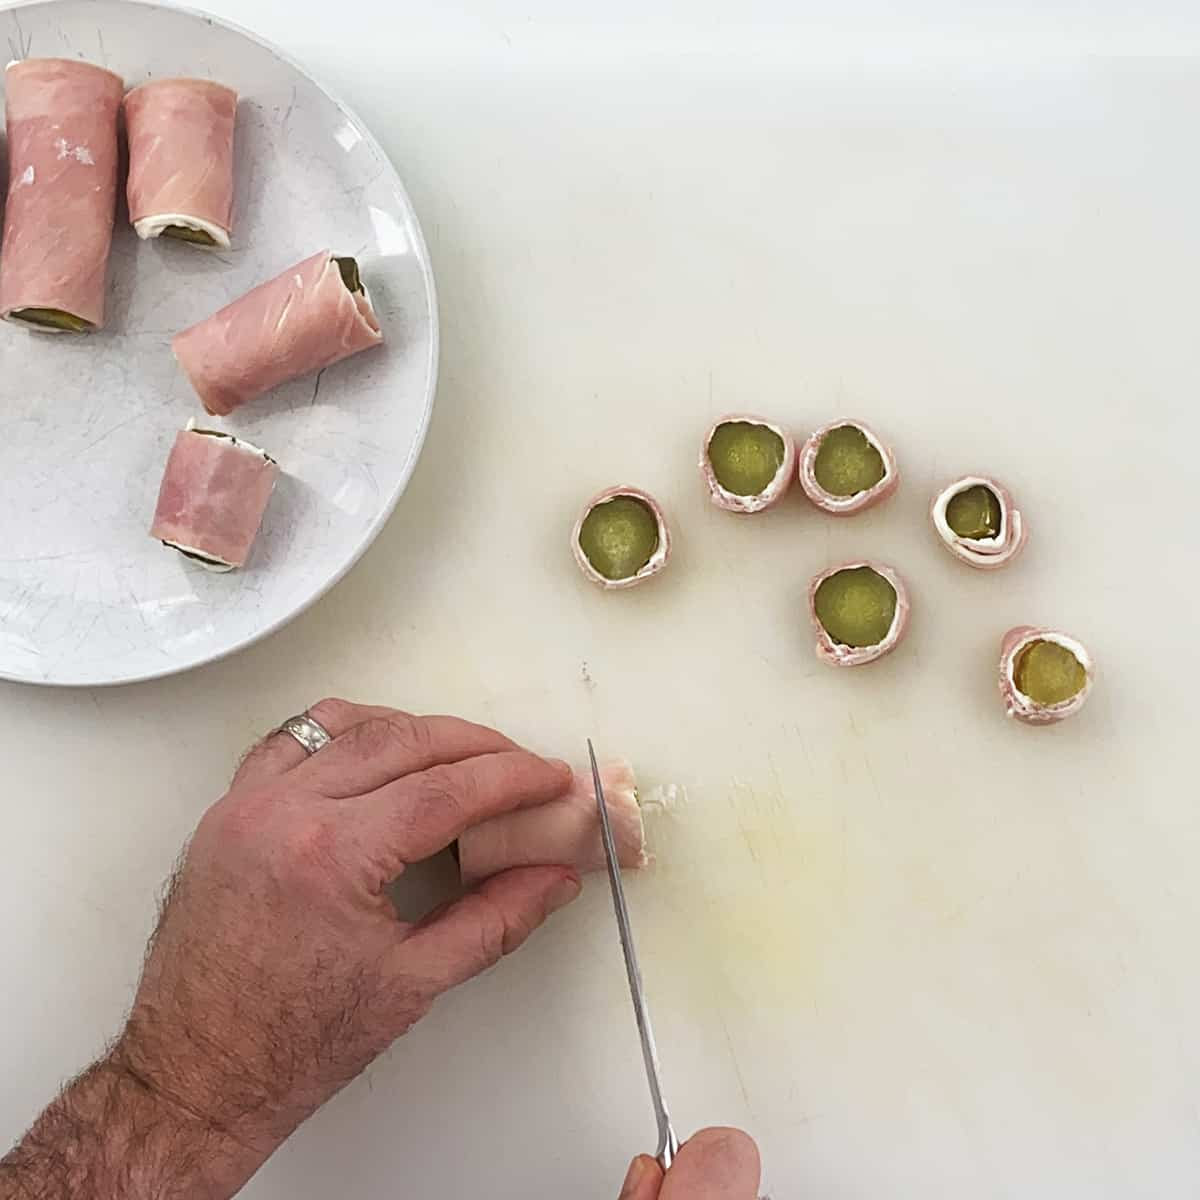 Cutting a pickle into individual pieces.